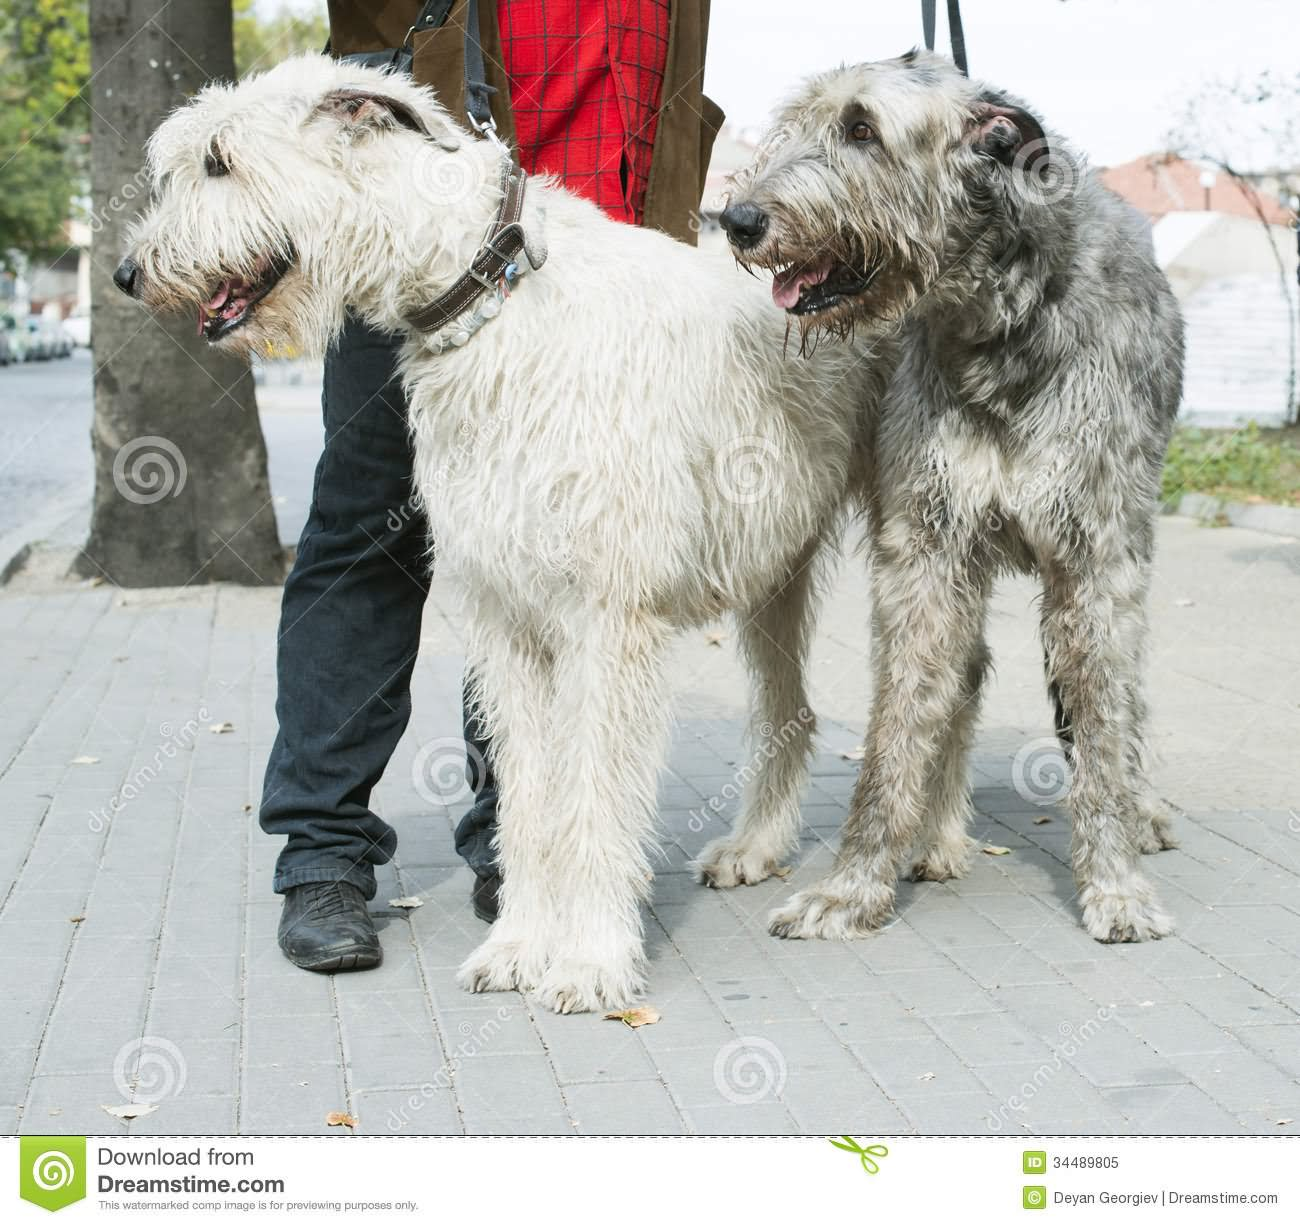 30 Very Beautiful White Giant Schnauzer Pictures And Images